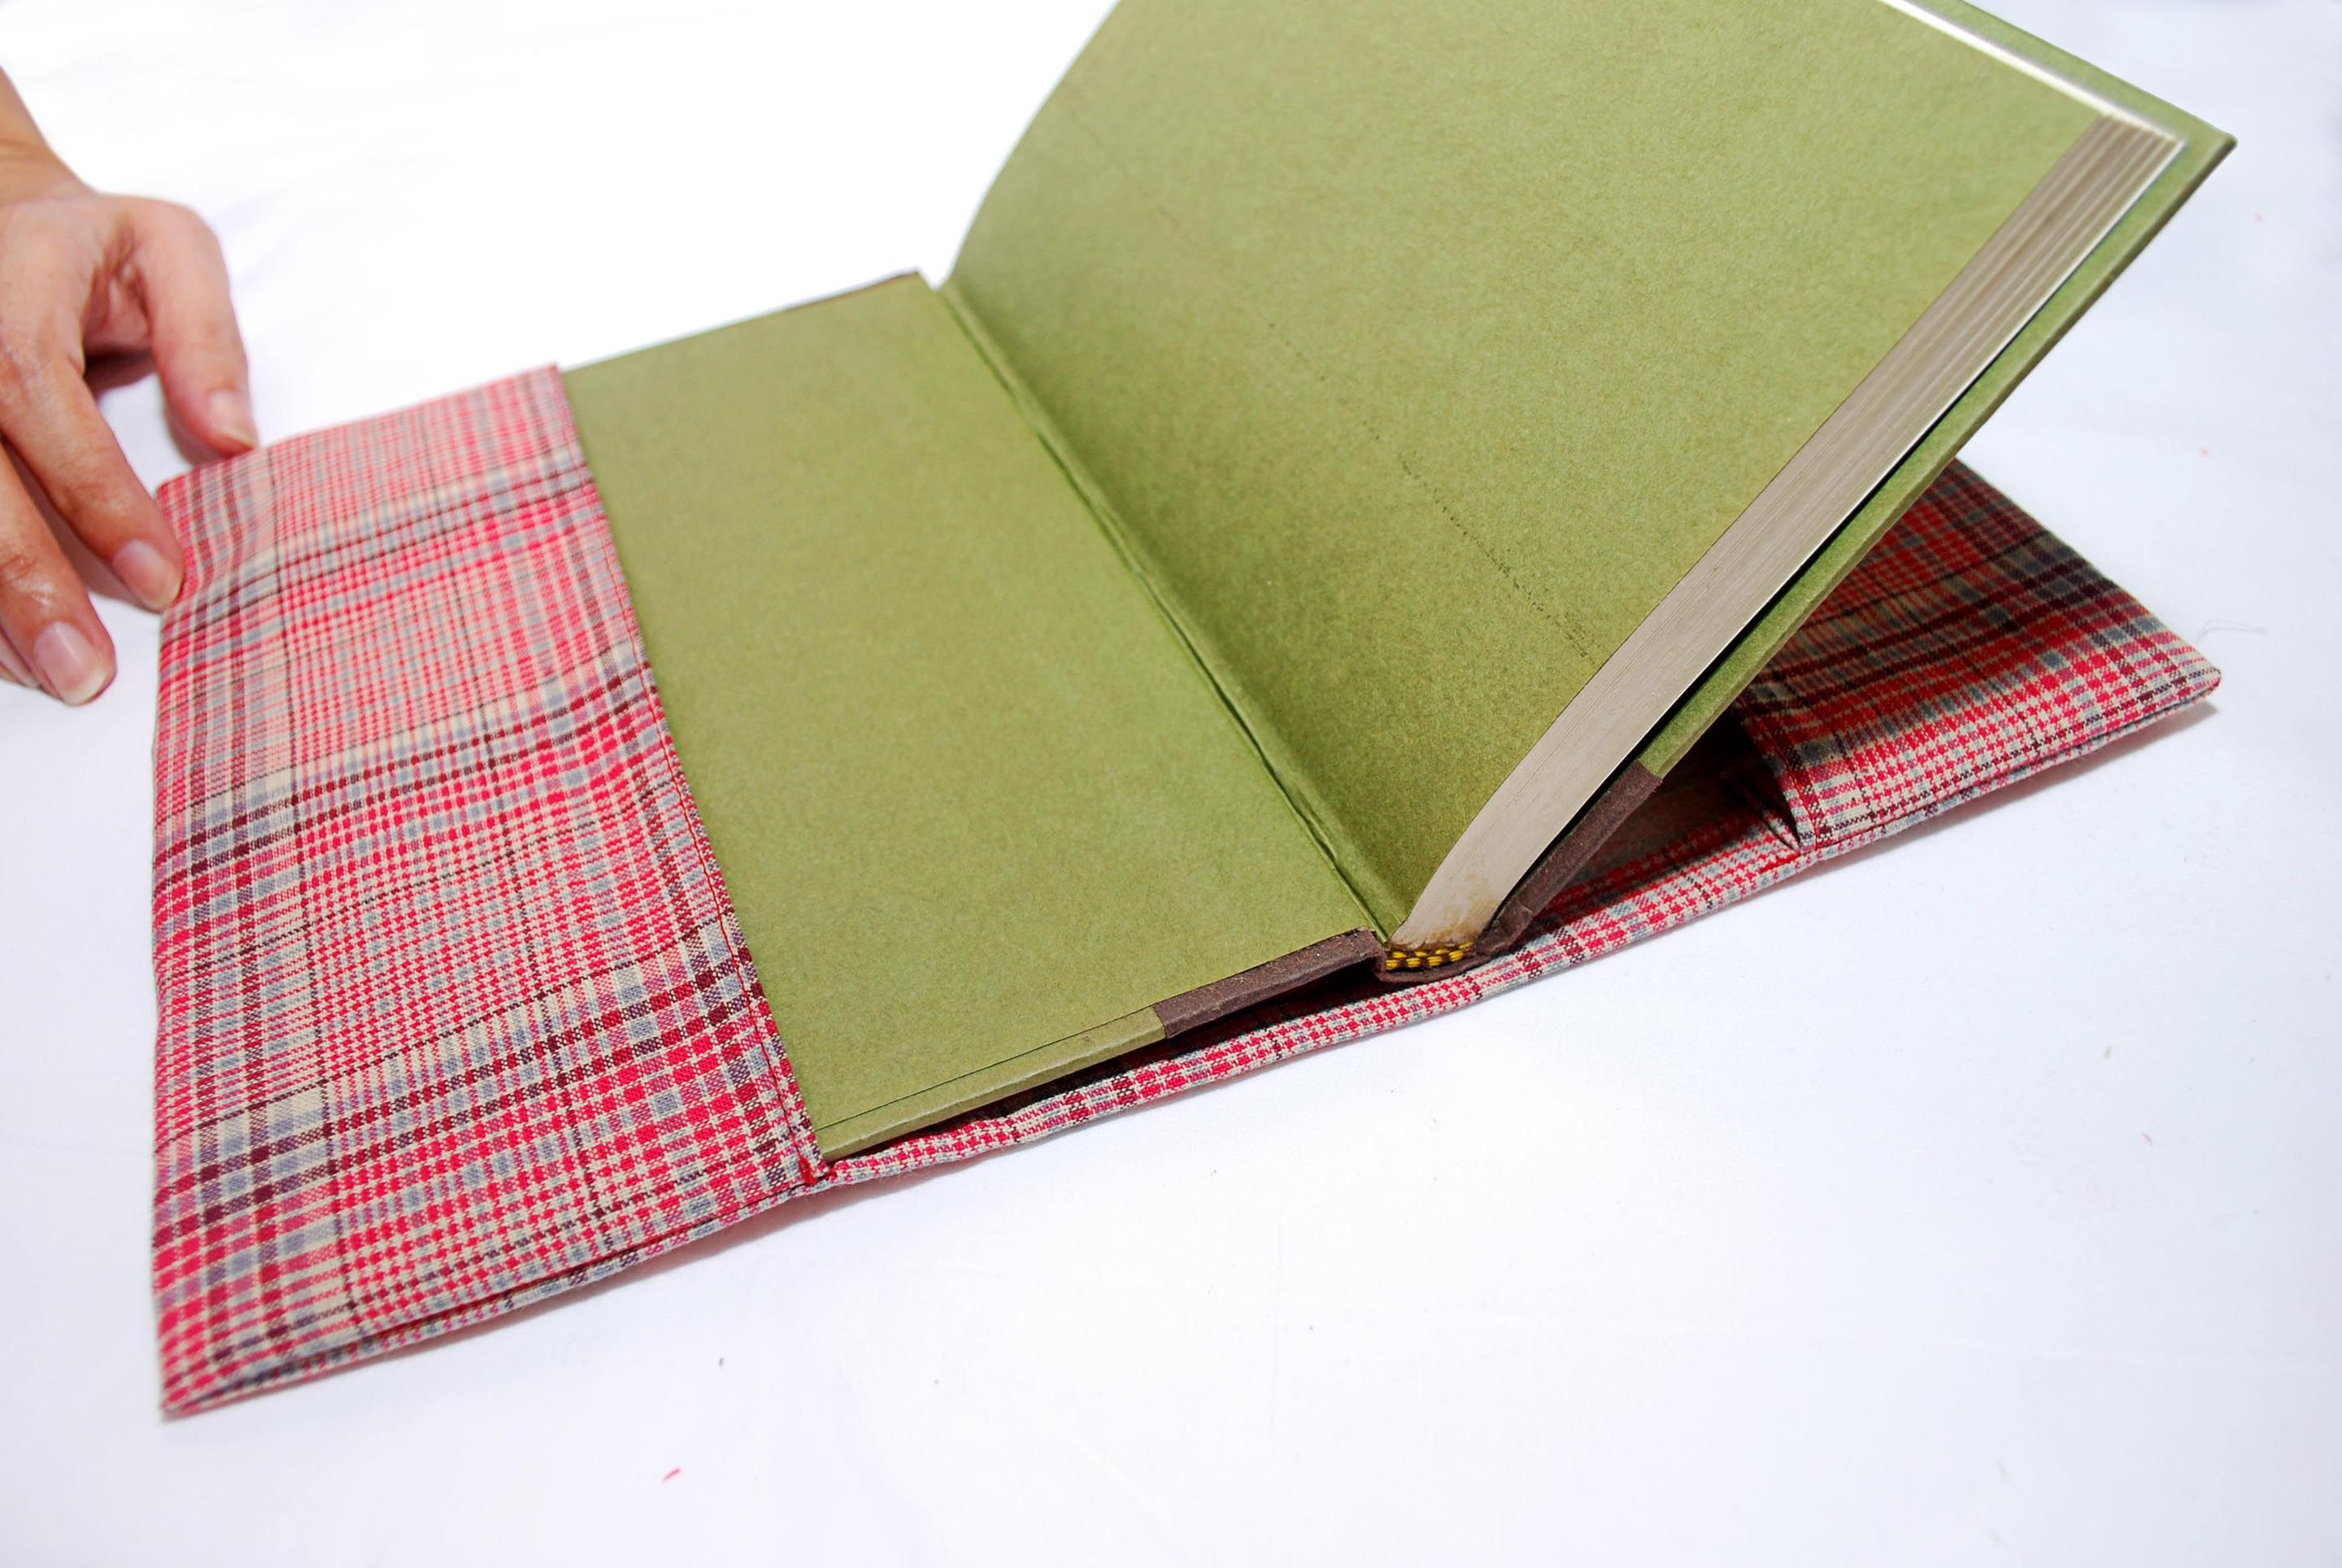 Sew a Fabric Book Cover Fabric book covers, Book covers